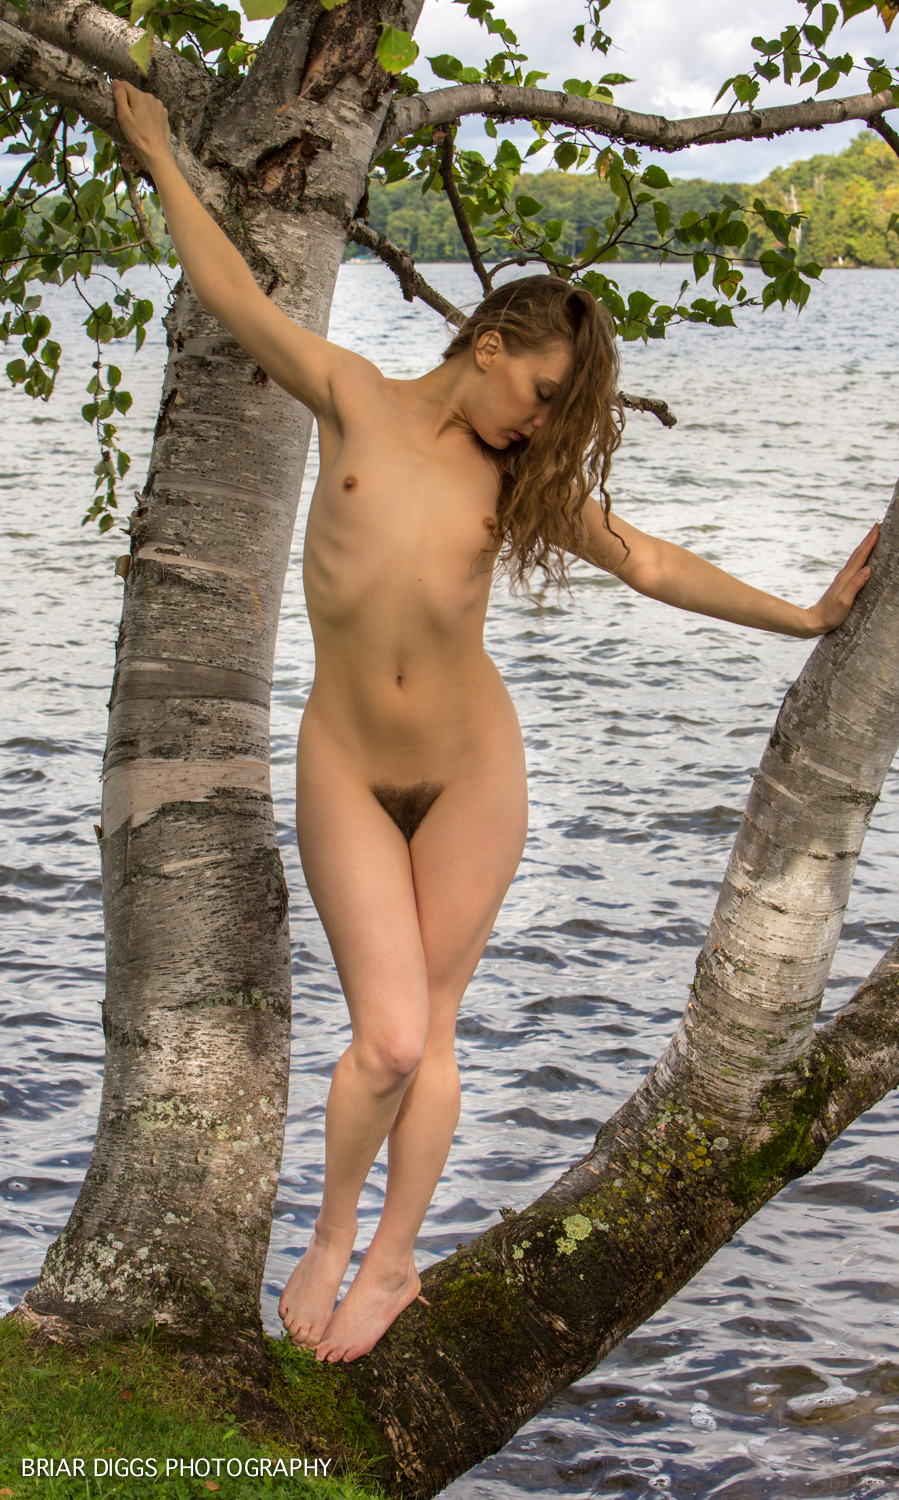 MODELS ART NUDES (COLOR)-92.jpg